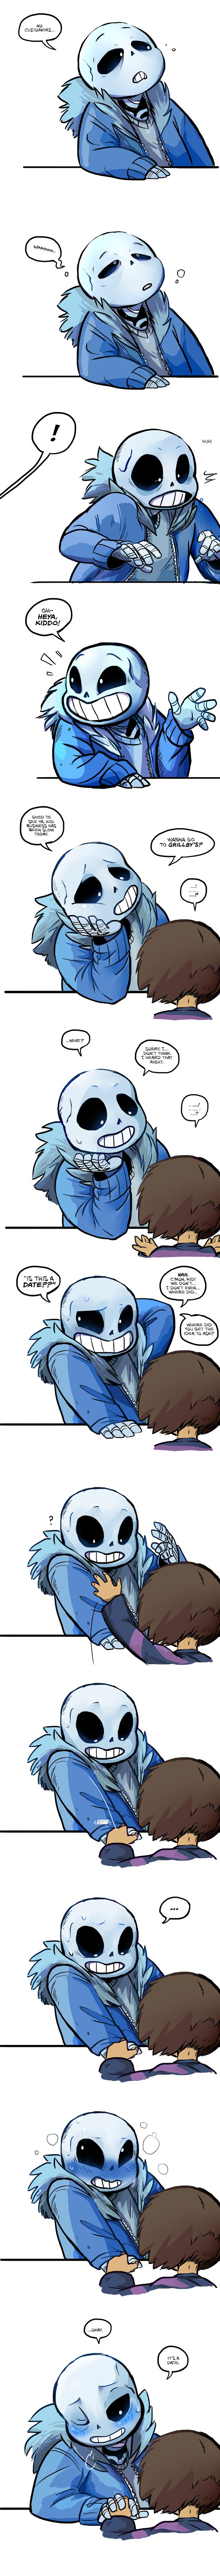 Lunch Break (Undertale) by AutopsyJuice